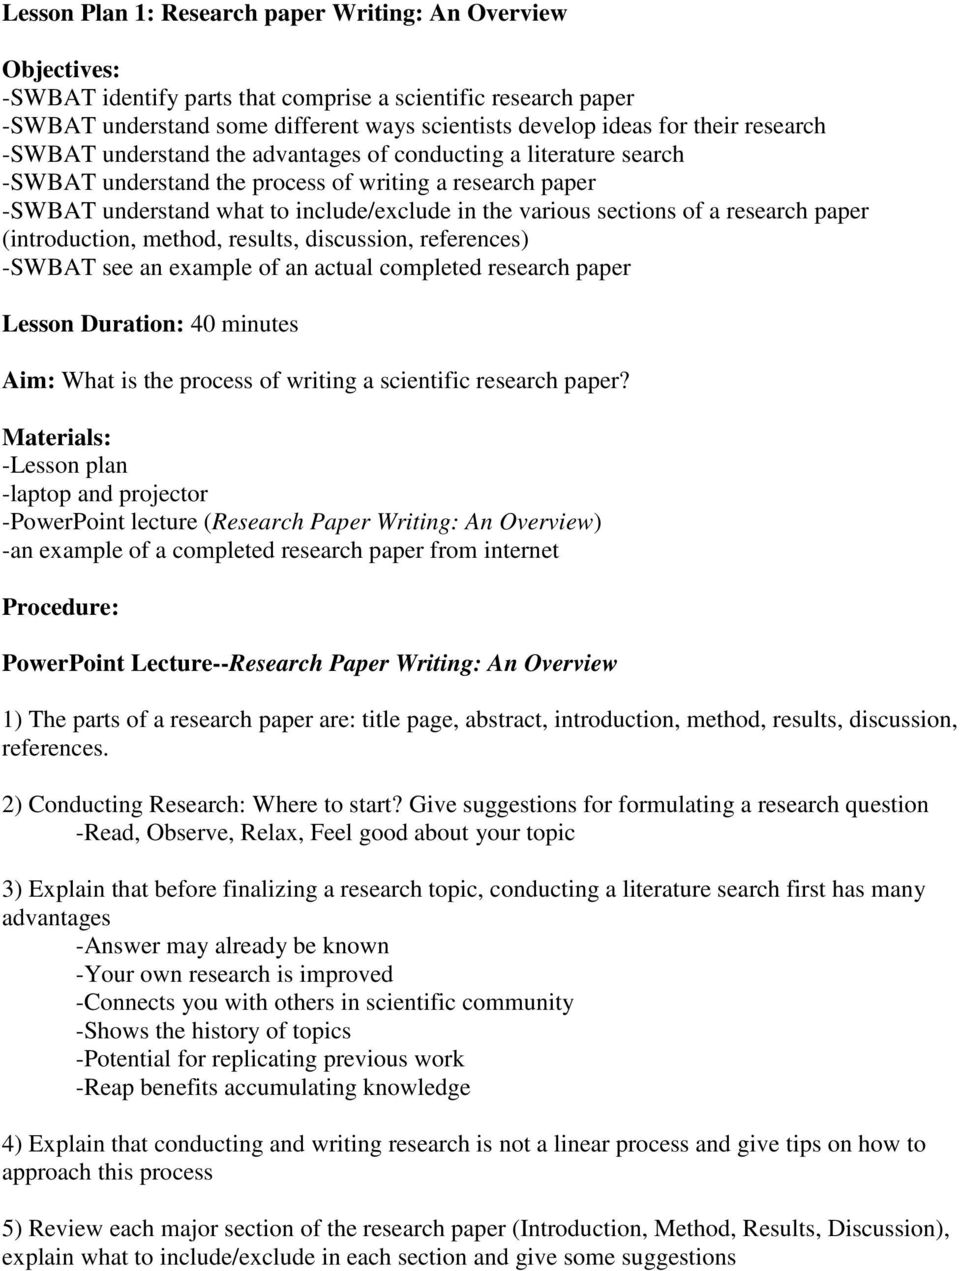 008 Page 1 Research Paper Parts Of Staggering Ppt 5 Chapter A Qualitative Full